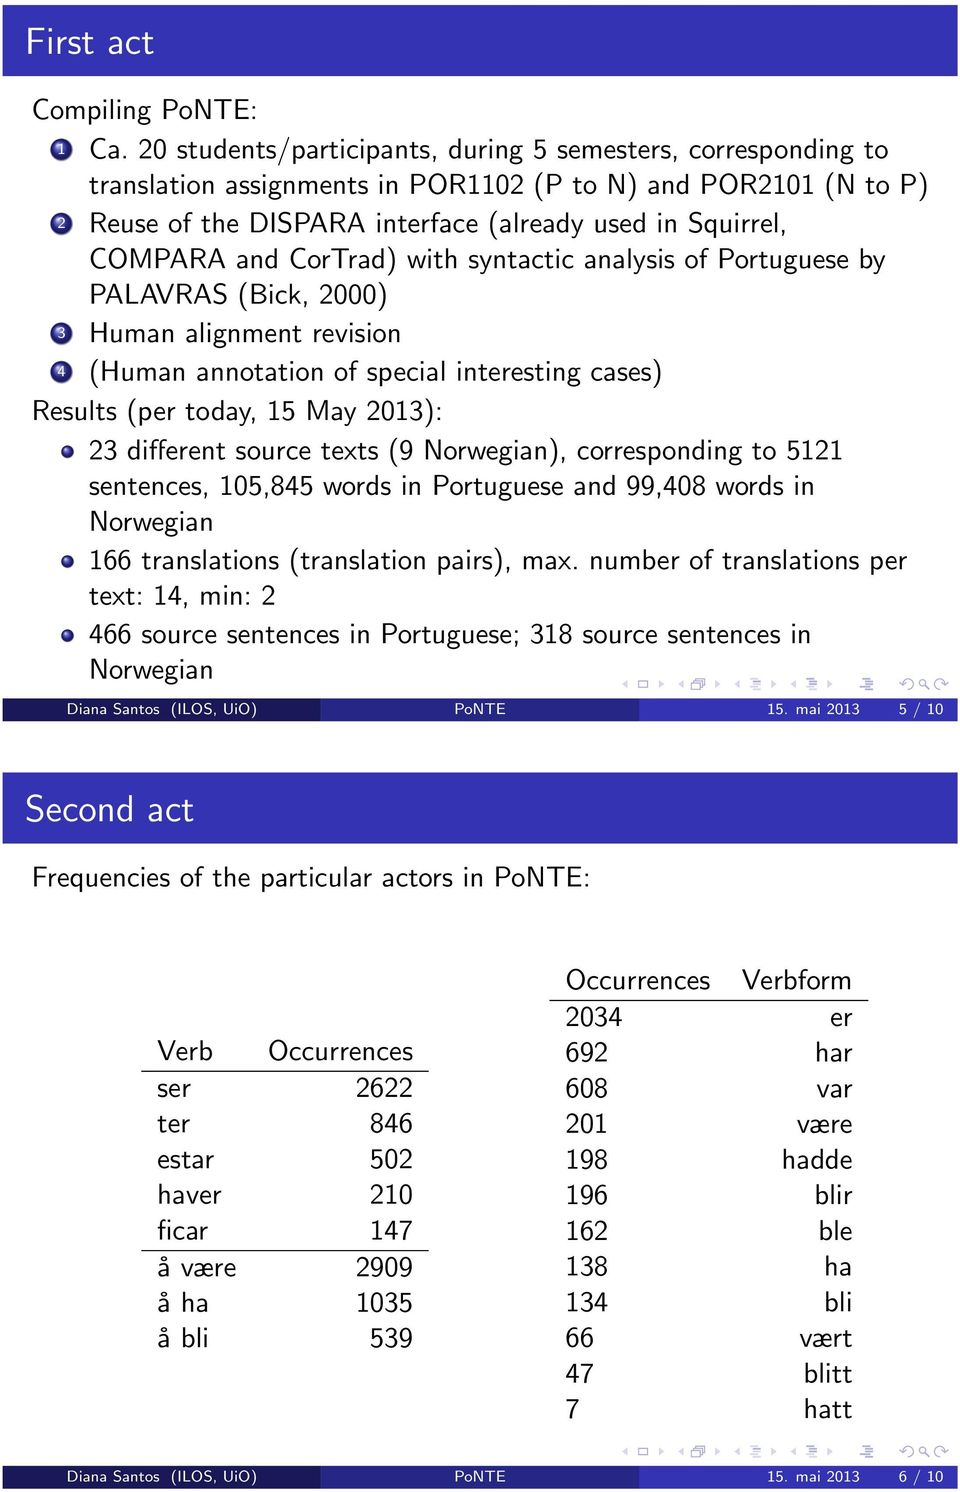 CorTrad) with syntactic analysis of Portuguese by PALAVRAS (Bick, 2000) 3 Human alignment revision 4 (Human annotation of special interesting cases) Results (per today, 15 May 2013): 23 different